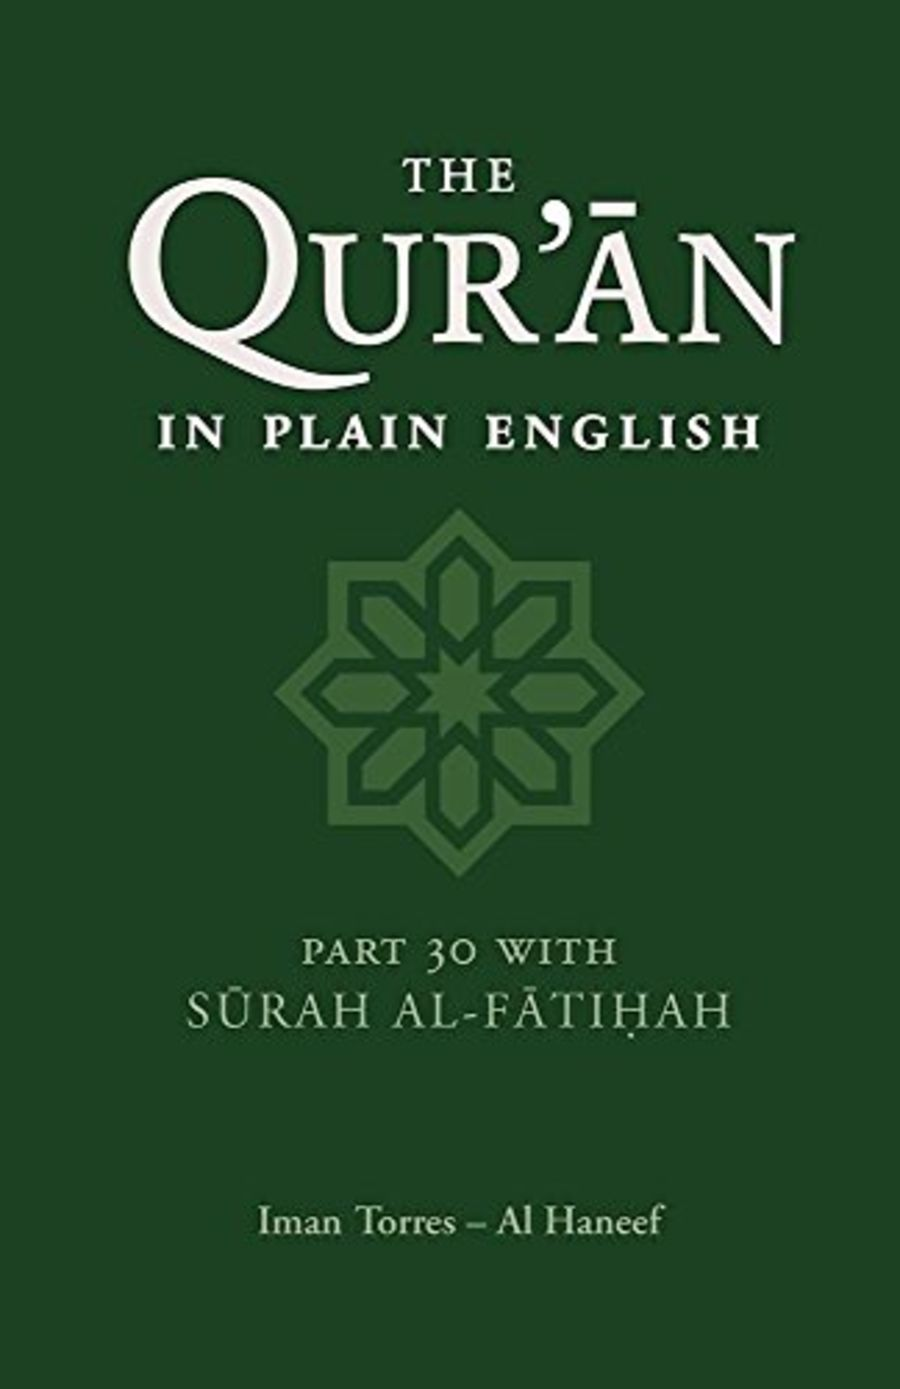 The Quran in Plain English: Part 30